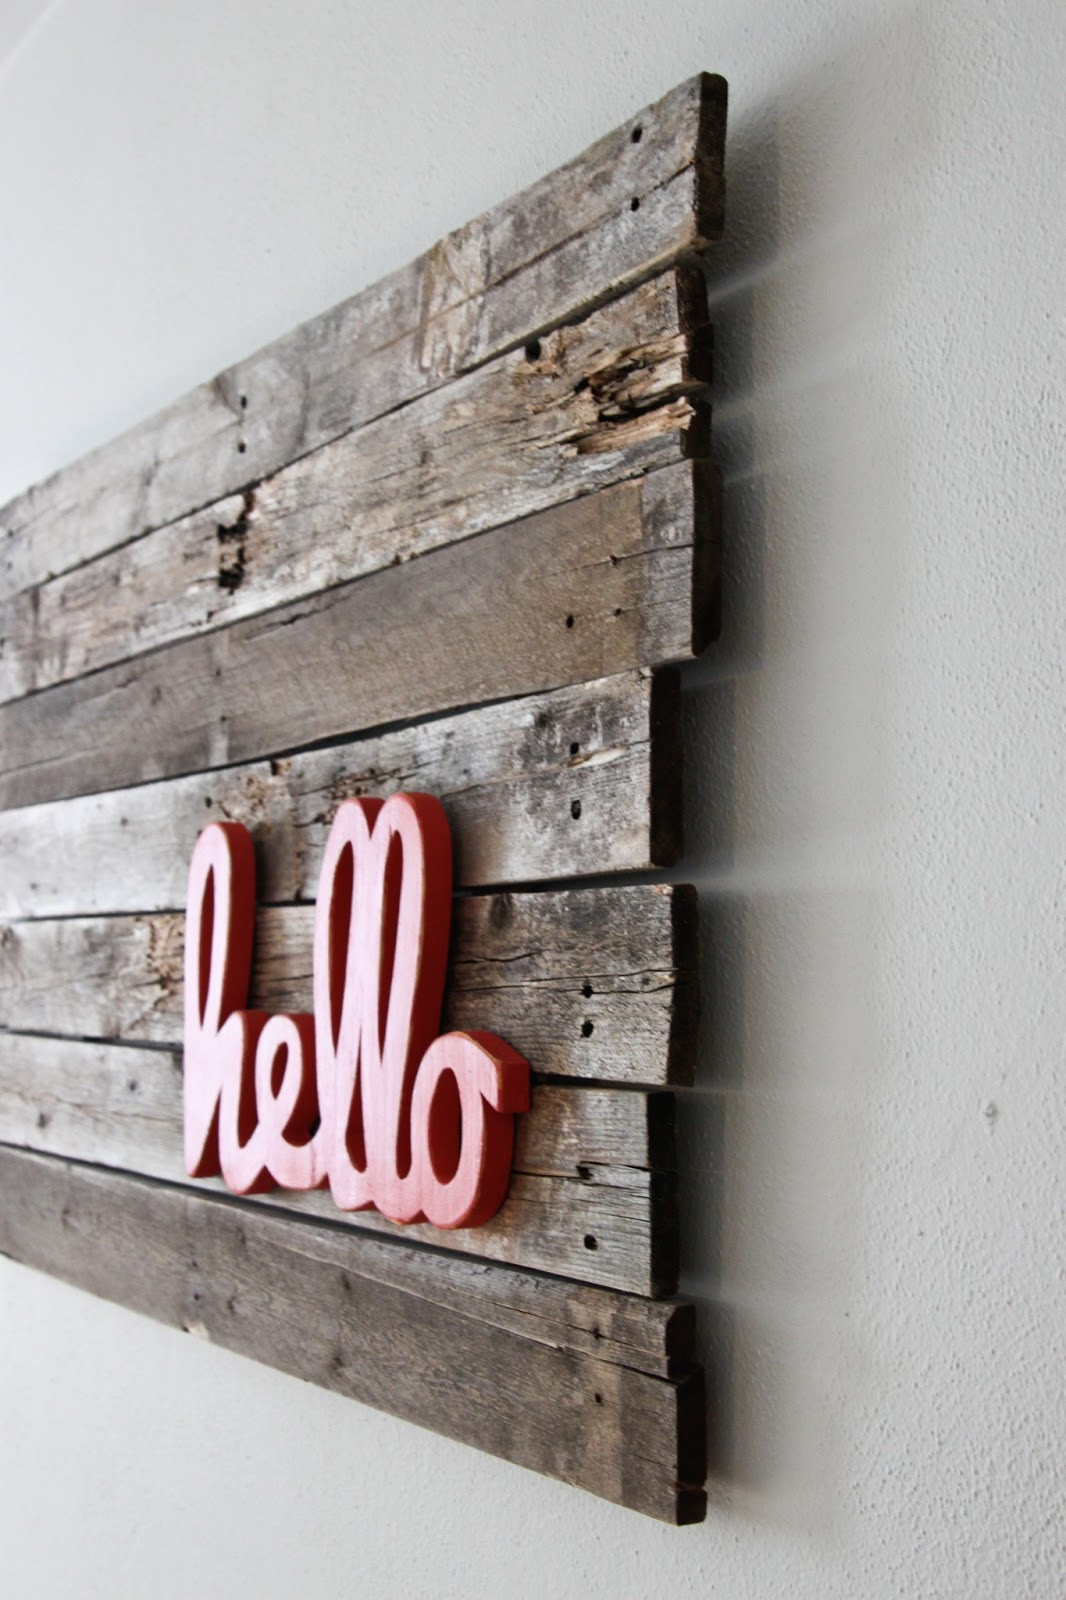 Best ideas about Pallet Wall Art . Save or Pin Upcycling Interiors Brilliant Ideas for Pallet Wall Art Now.